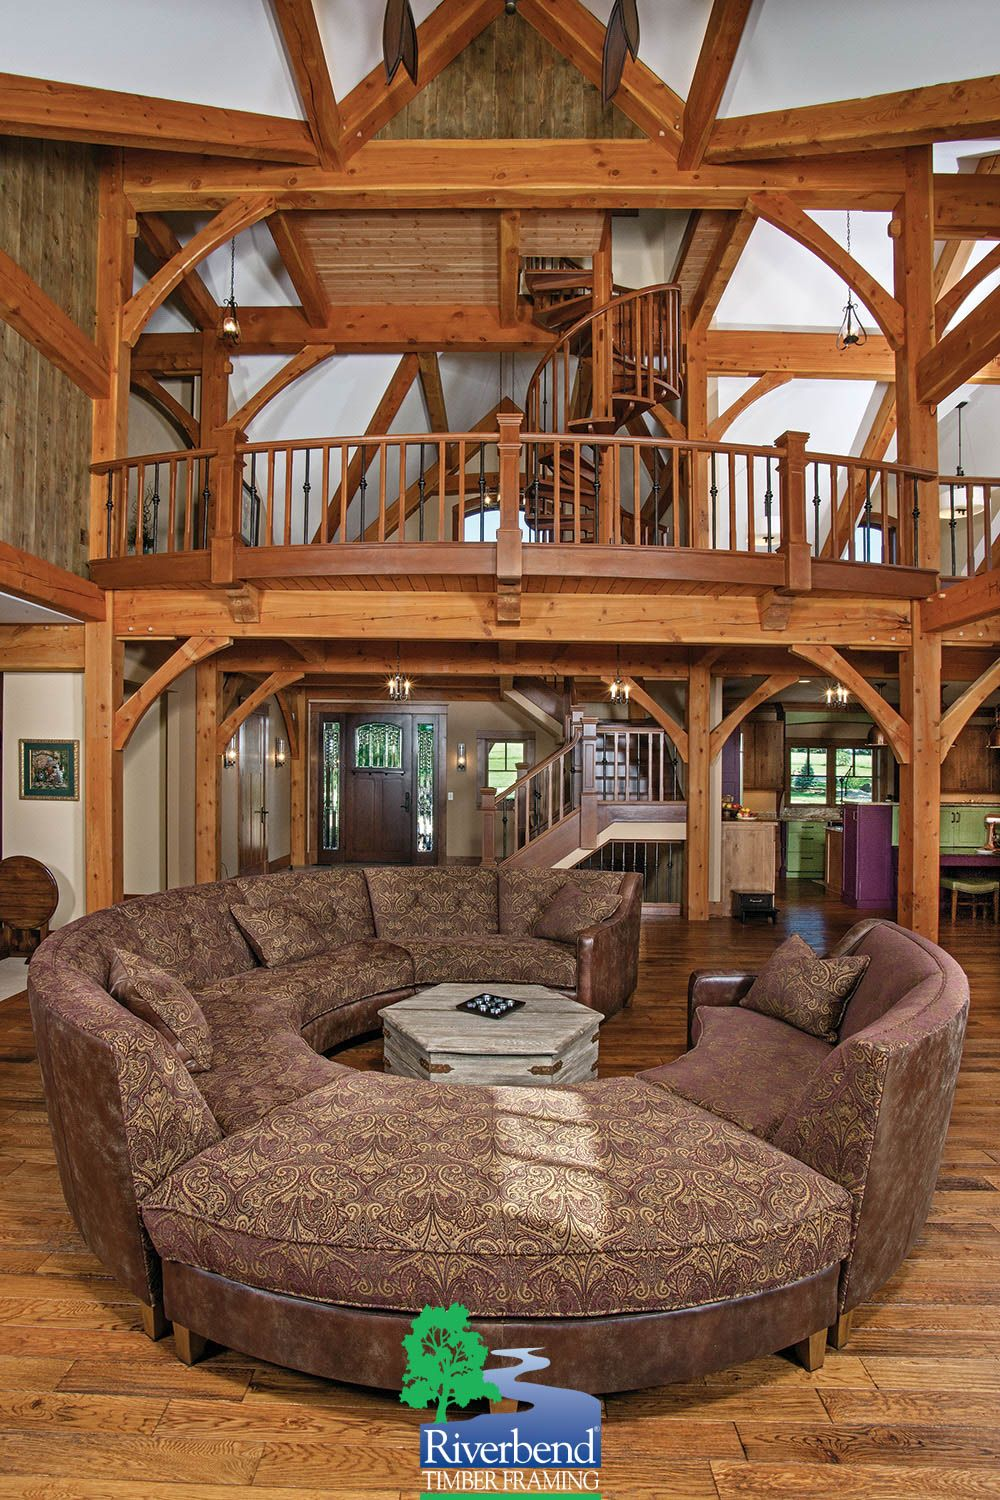 Great Room I Missouri Timber Frame Home I Riverbend Timber Framing ...